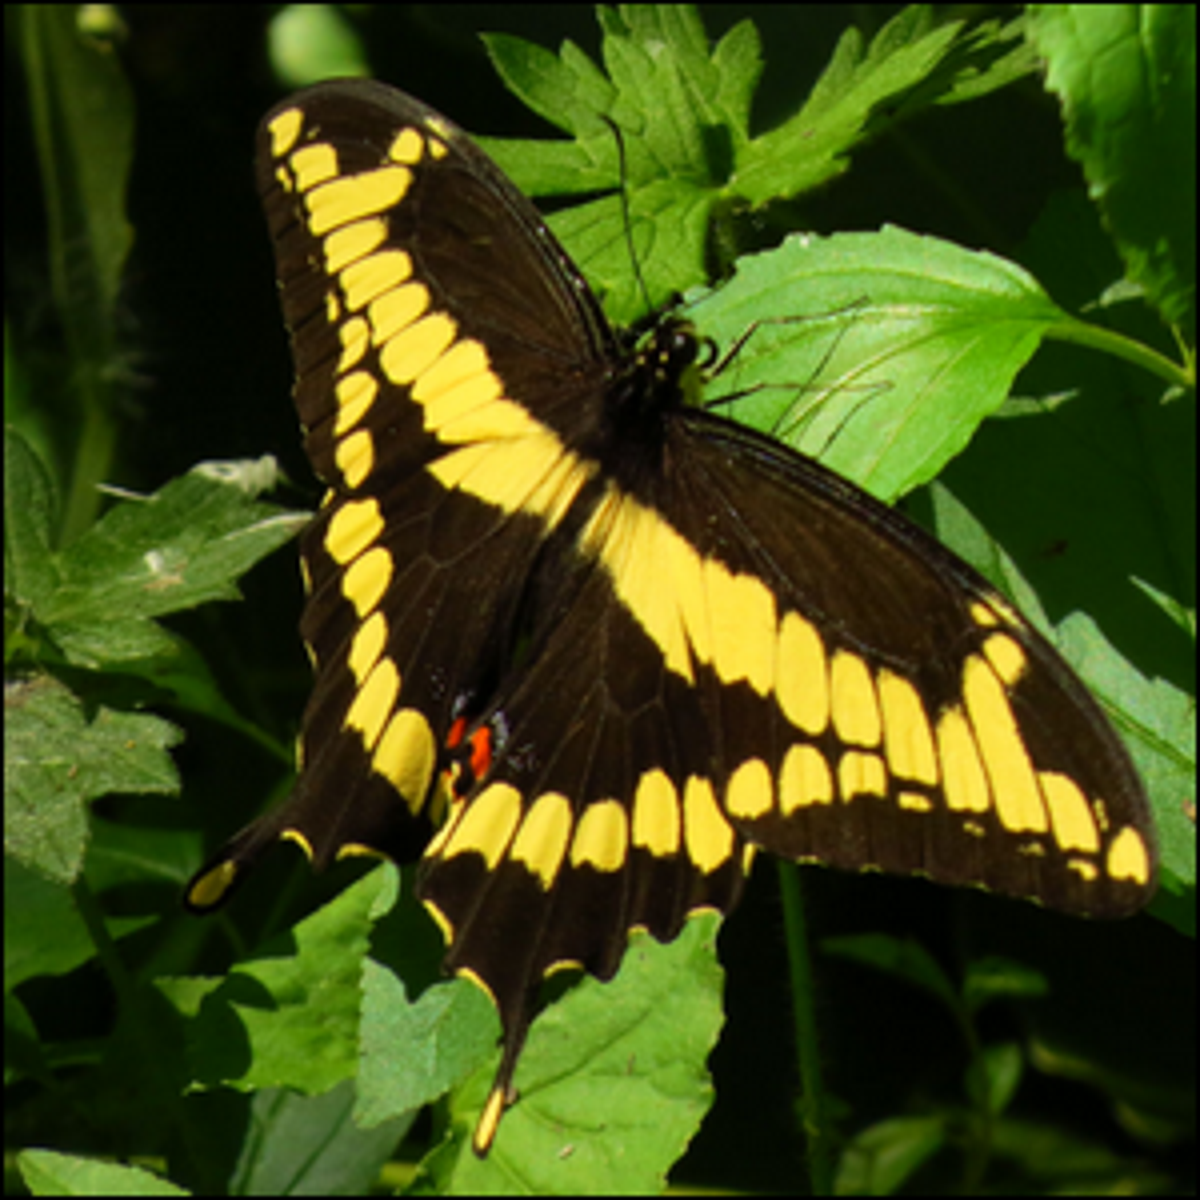 Photo of a Giant Swallowtail Butterfly taken at Shirleys Bay, Ottawa, Ontario, Canada.